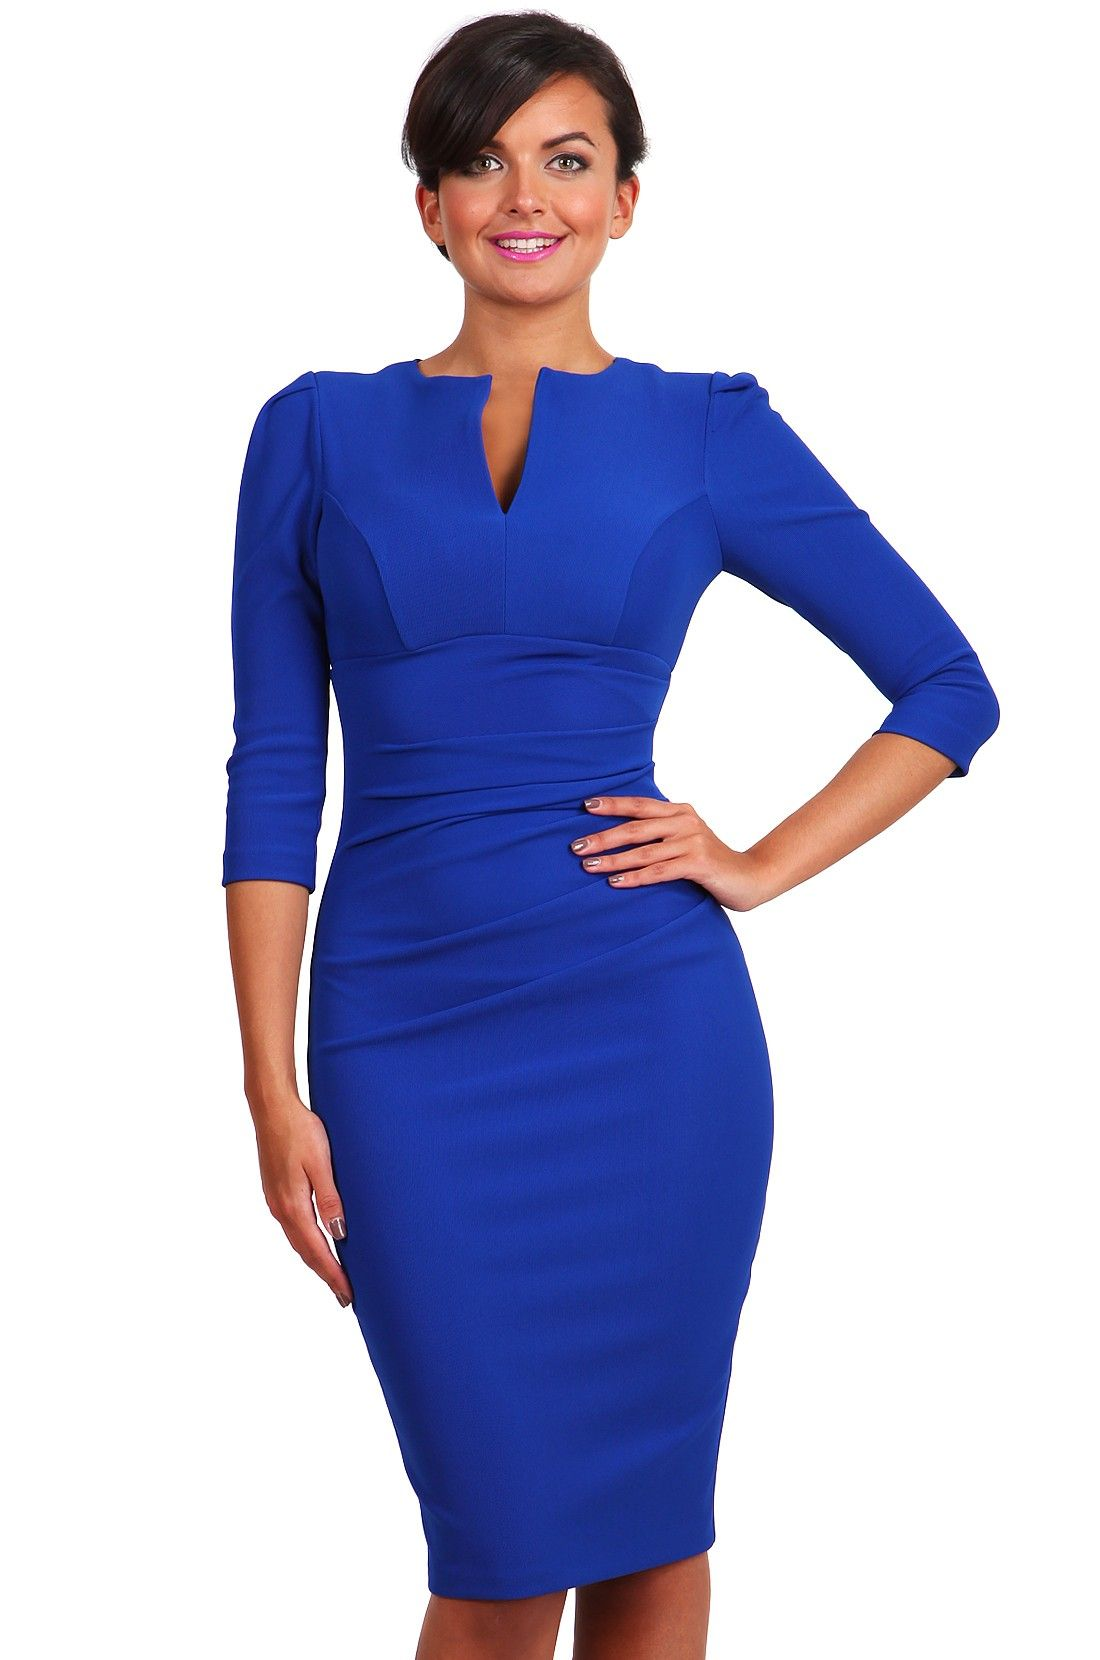 buy best well known cheap prices Lydia Three Quarter Sleeved #Dress #divacatwalk #bestseller ...